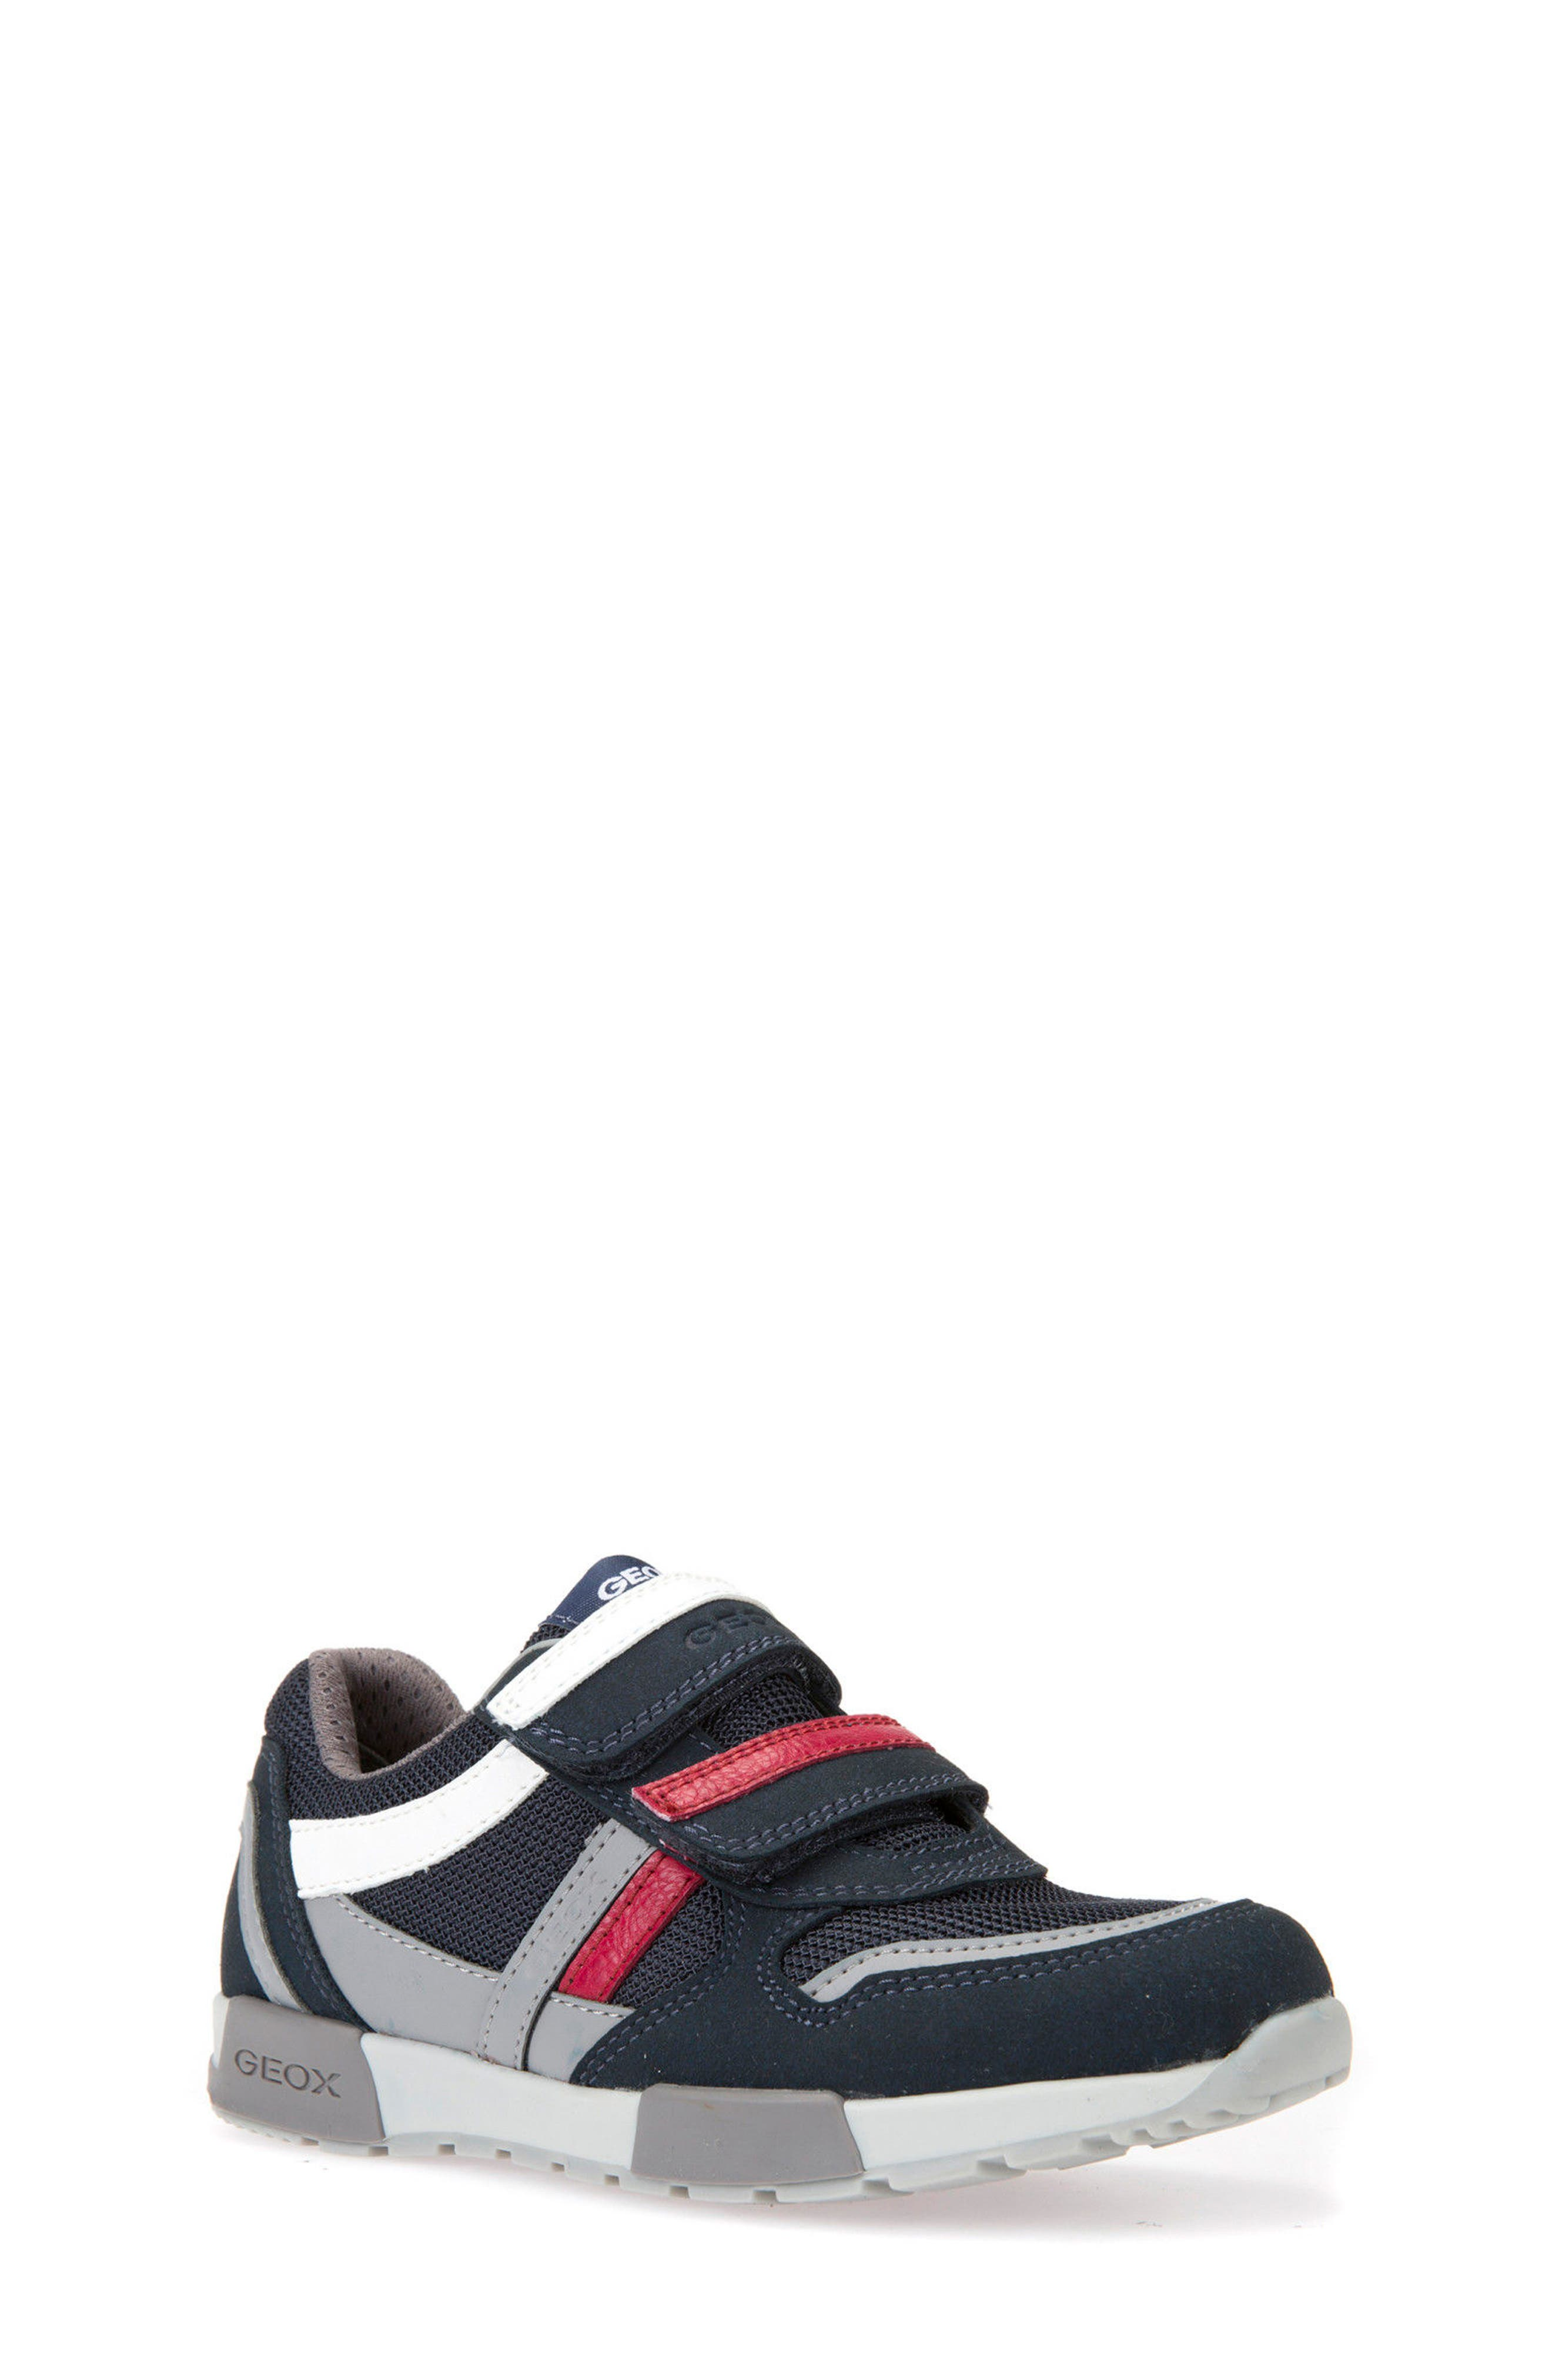 Alfier Stripe Low Top Sneaker,                             Main thumbnail 1, color,                             NAVY/ GREY